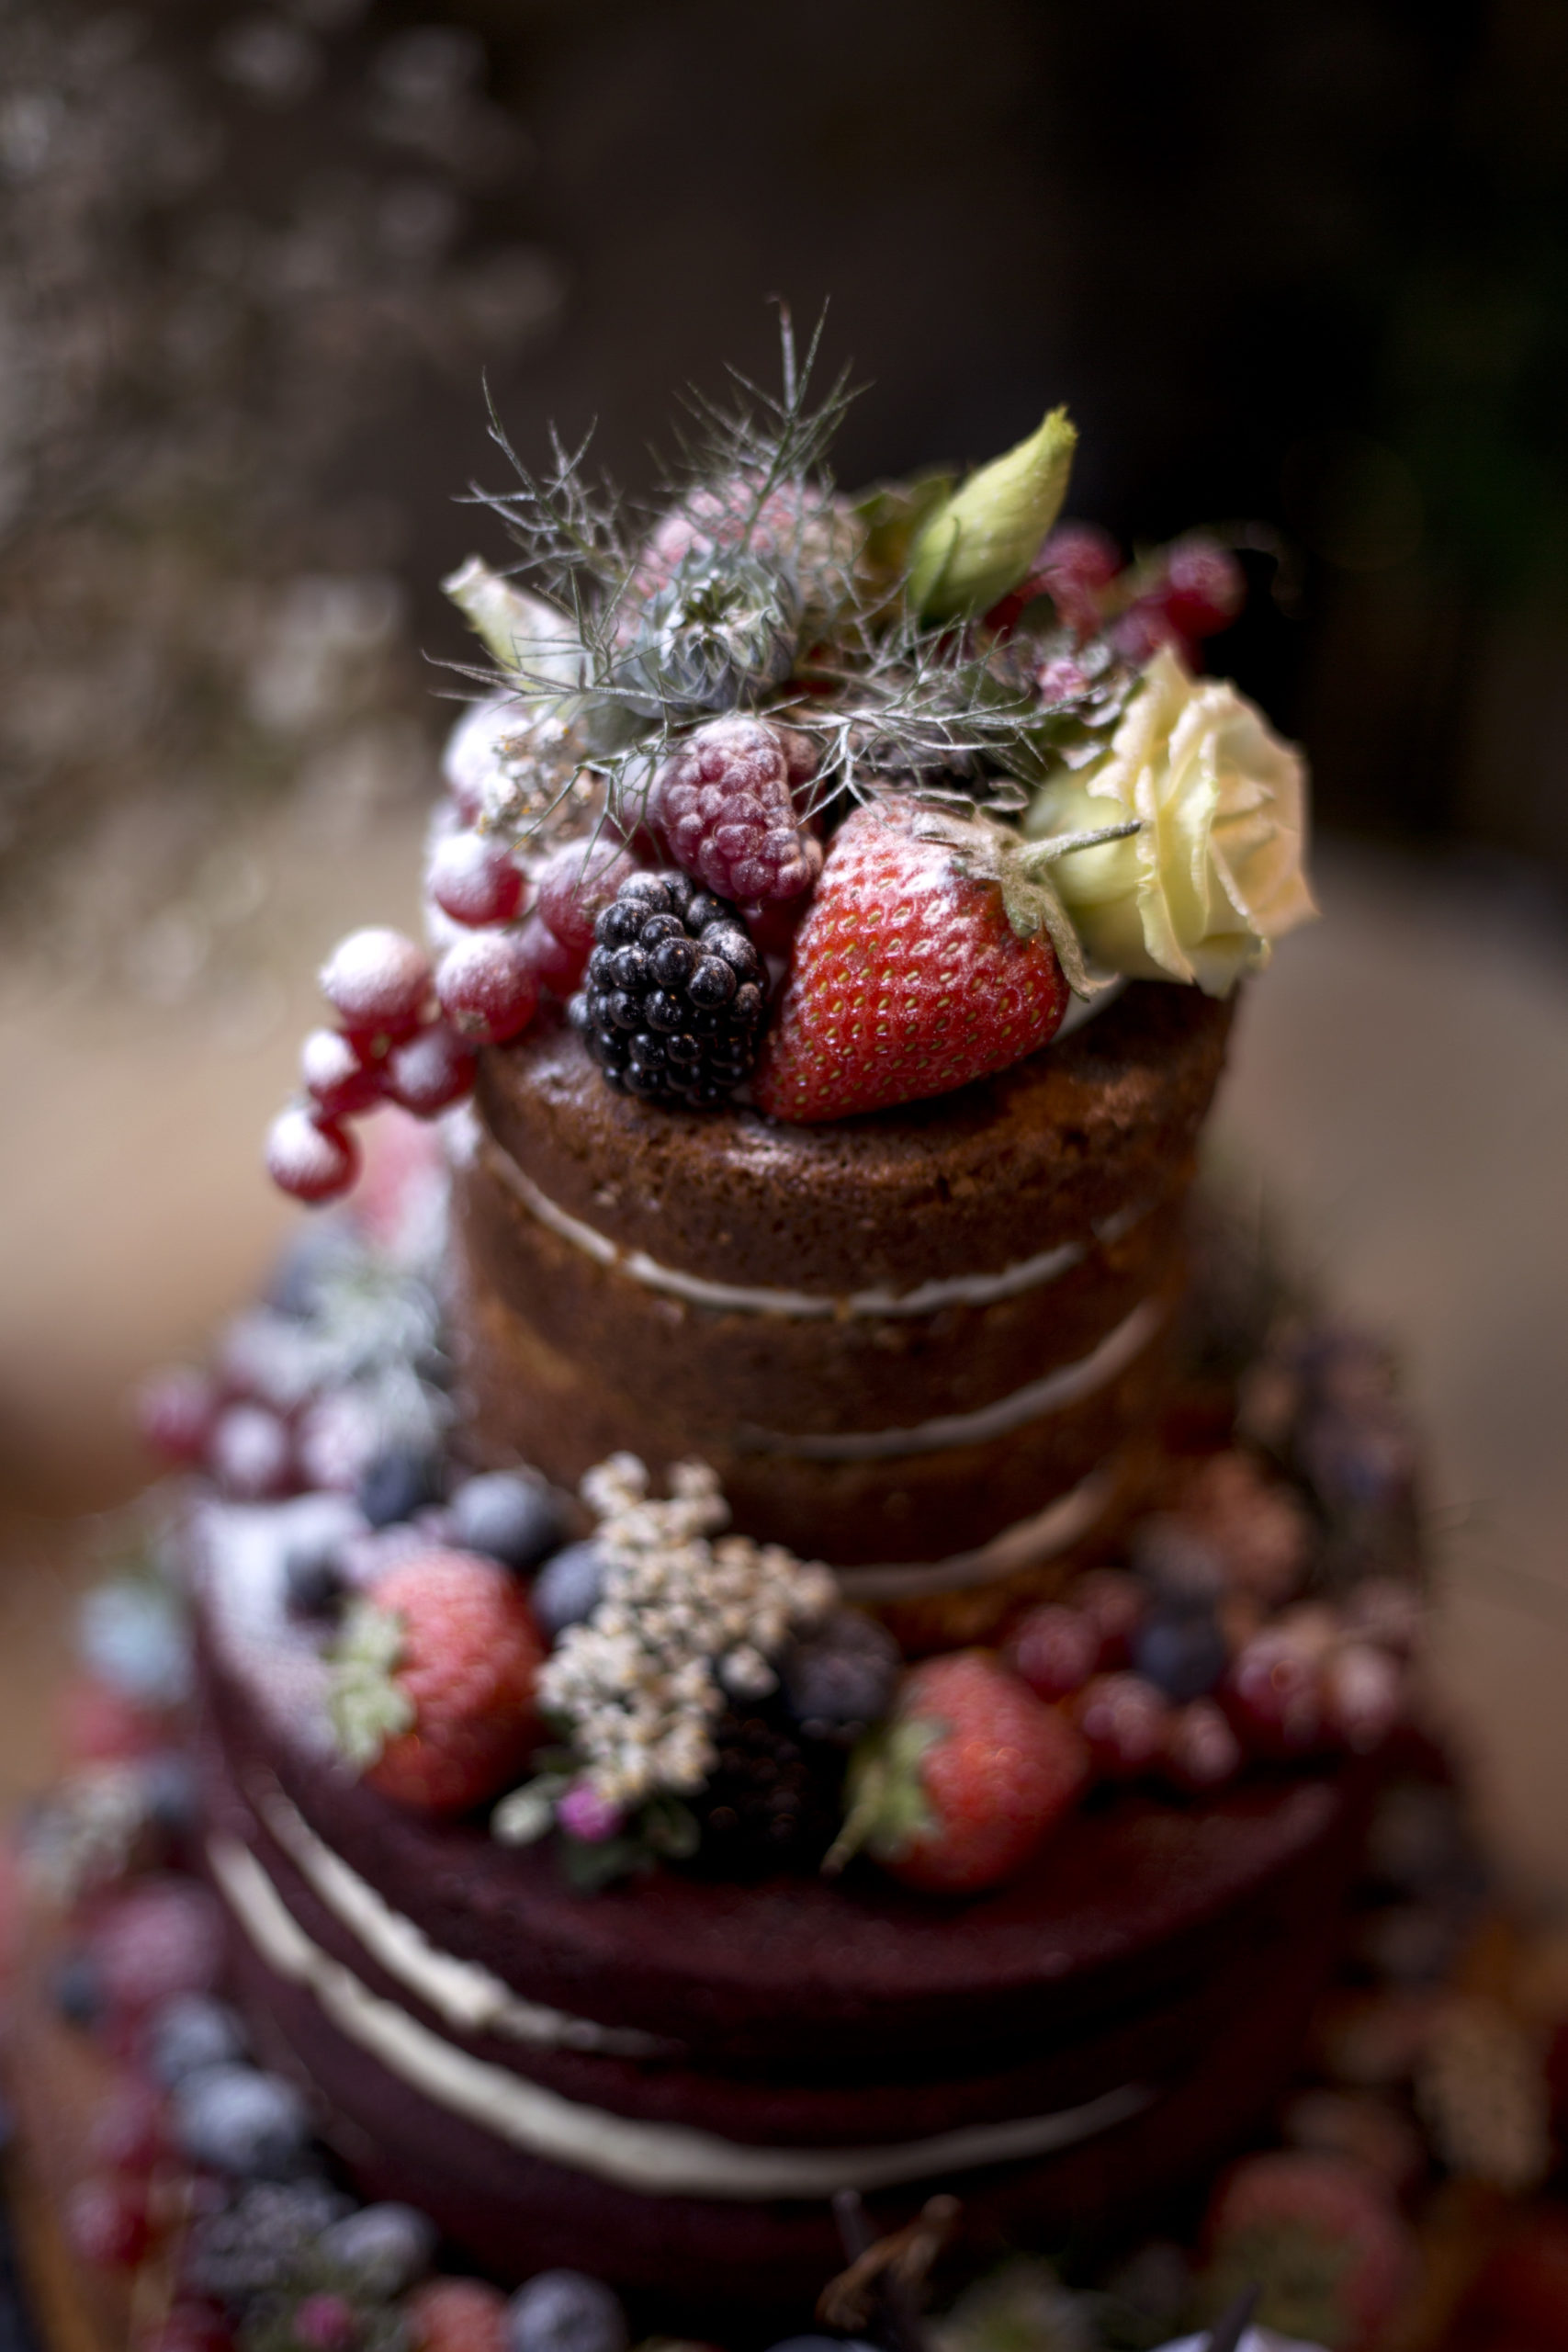 Strawberry and chocolate rose layered rustic wedding cake Cripps barn outdoor wedding photographer